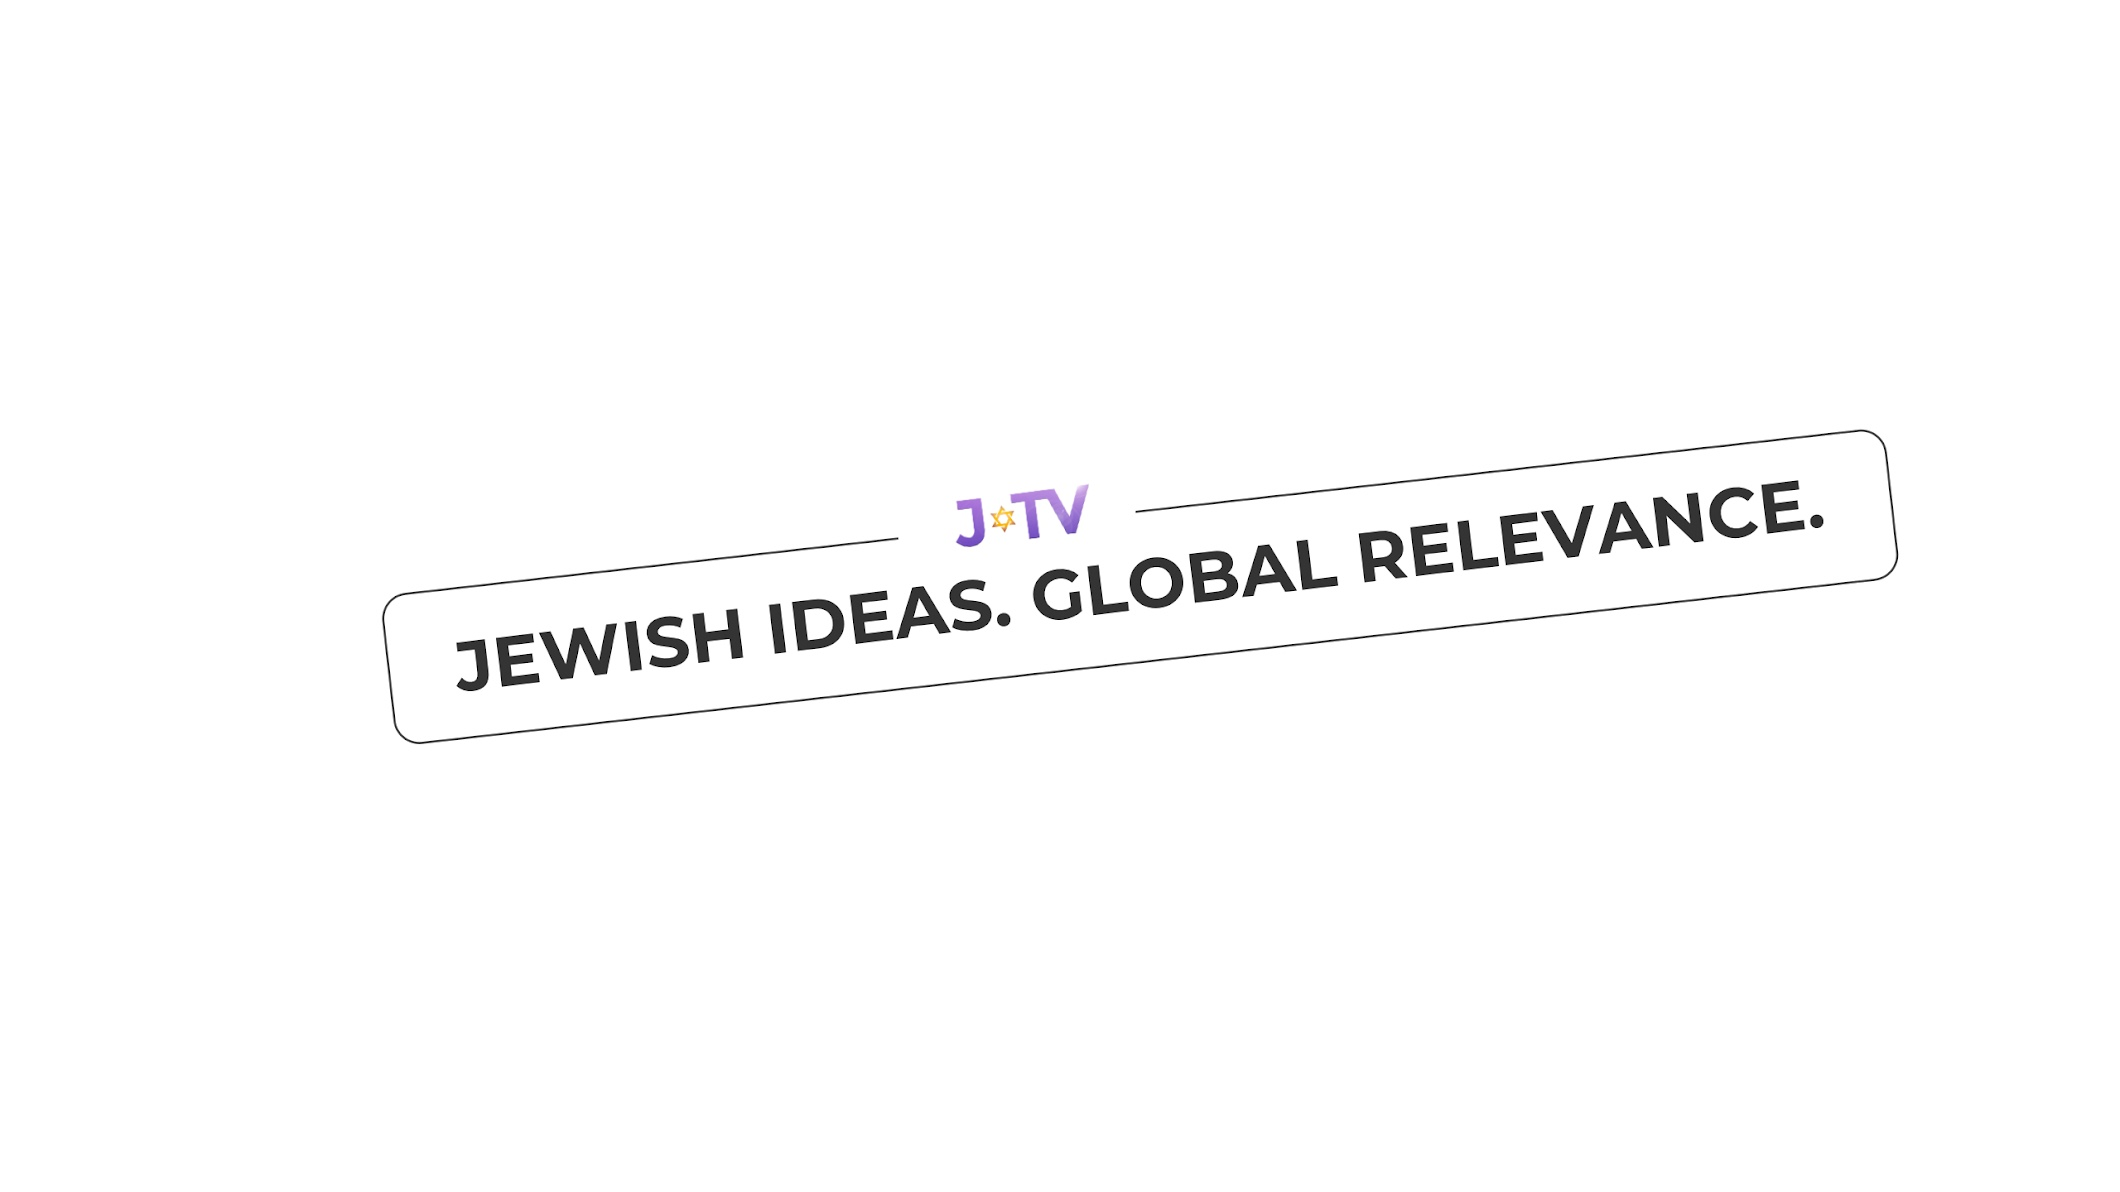 J-TV: The Global Jewish Channel